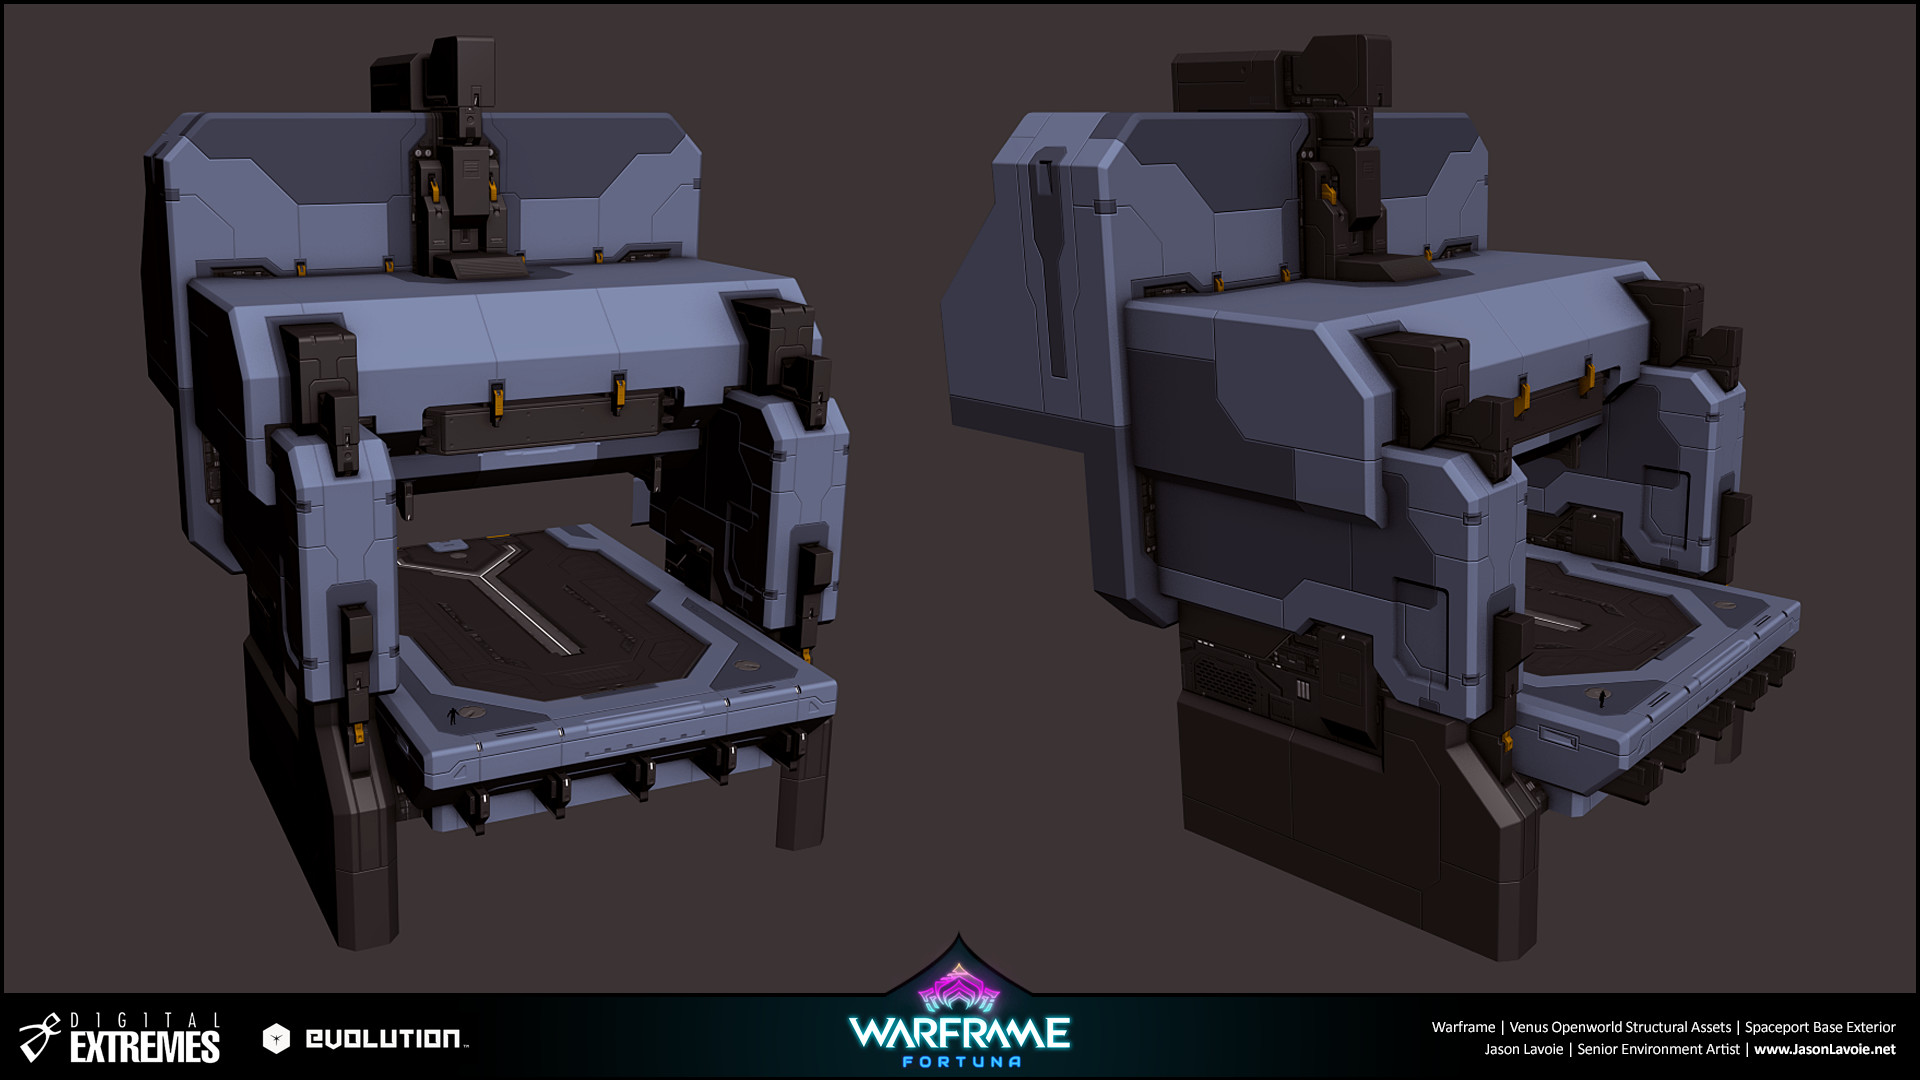 Jason lavoie jasonlavoie warframefortuna spaceportbaseexterior 3dmax buildingtop